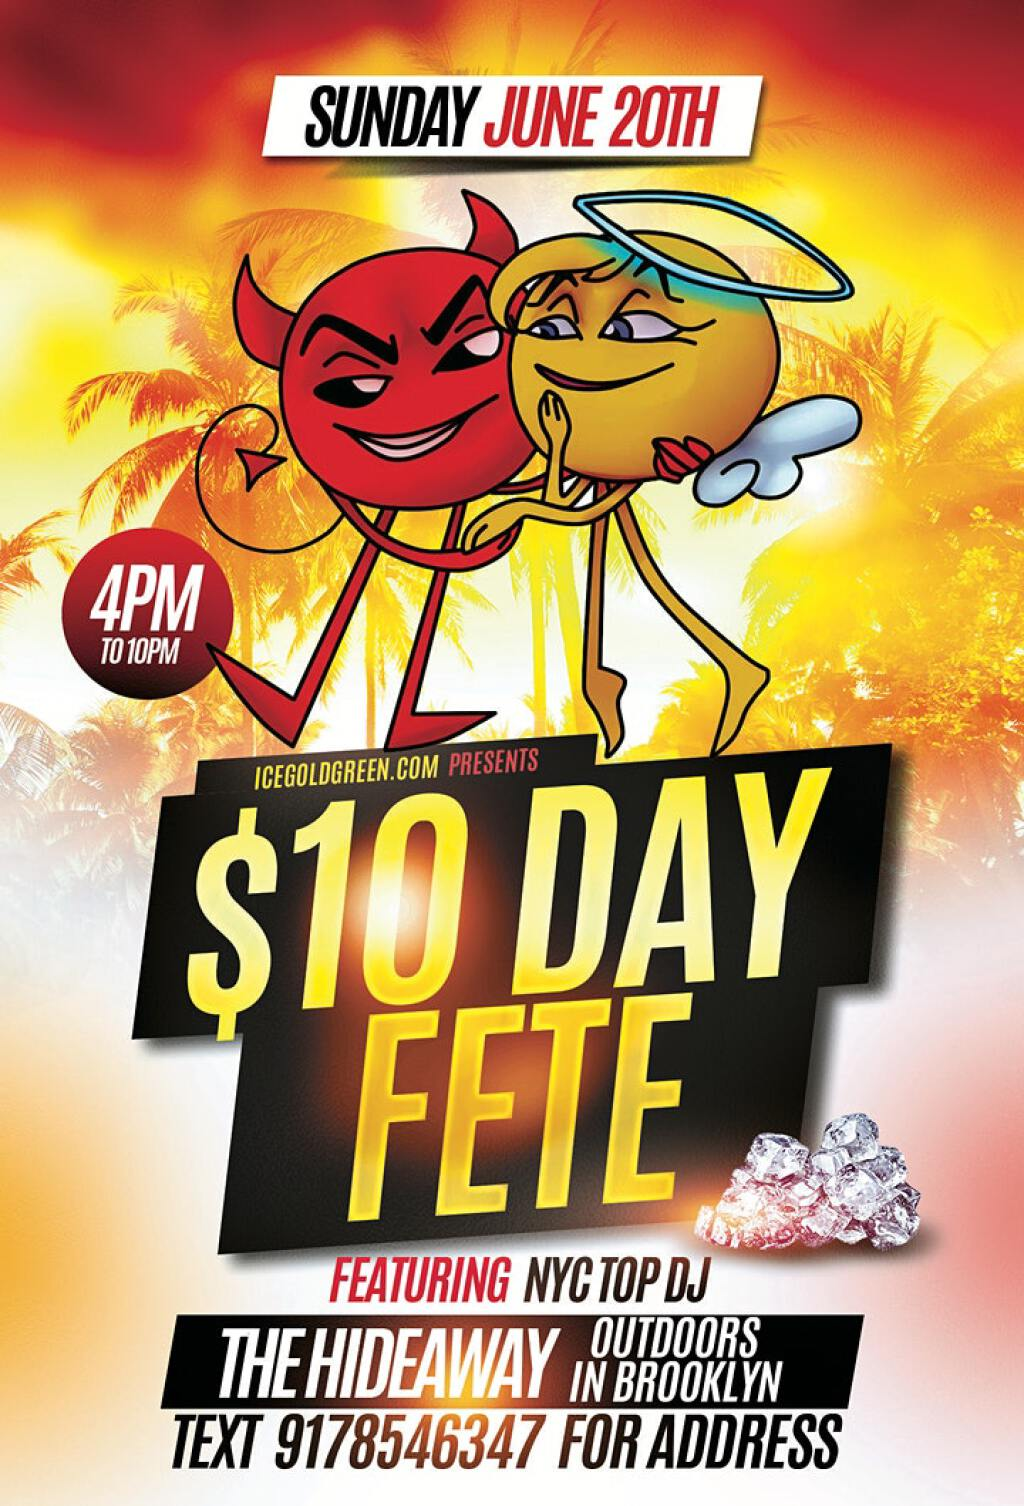 $10 Day Fete flyer or graphic.